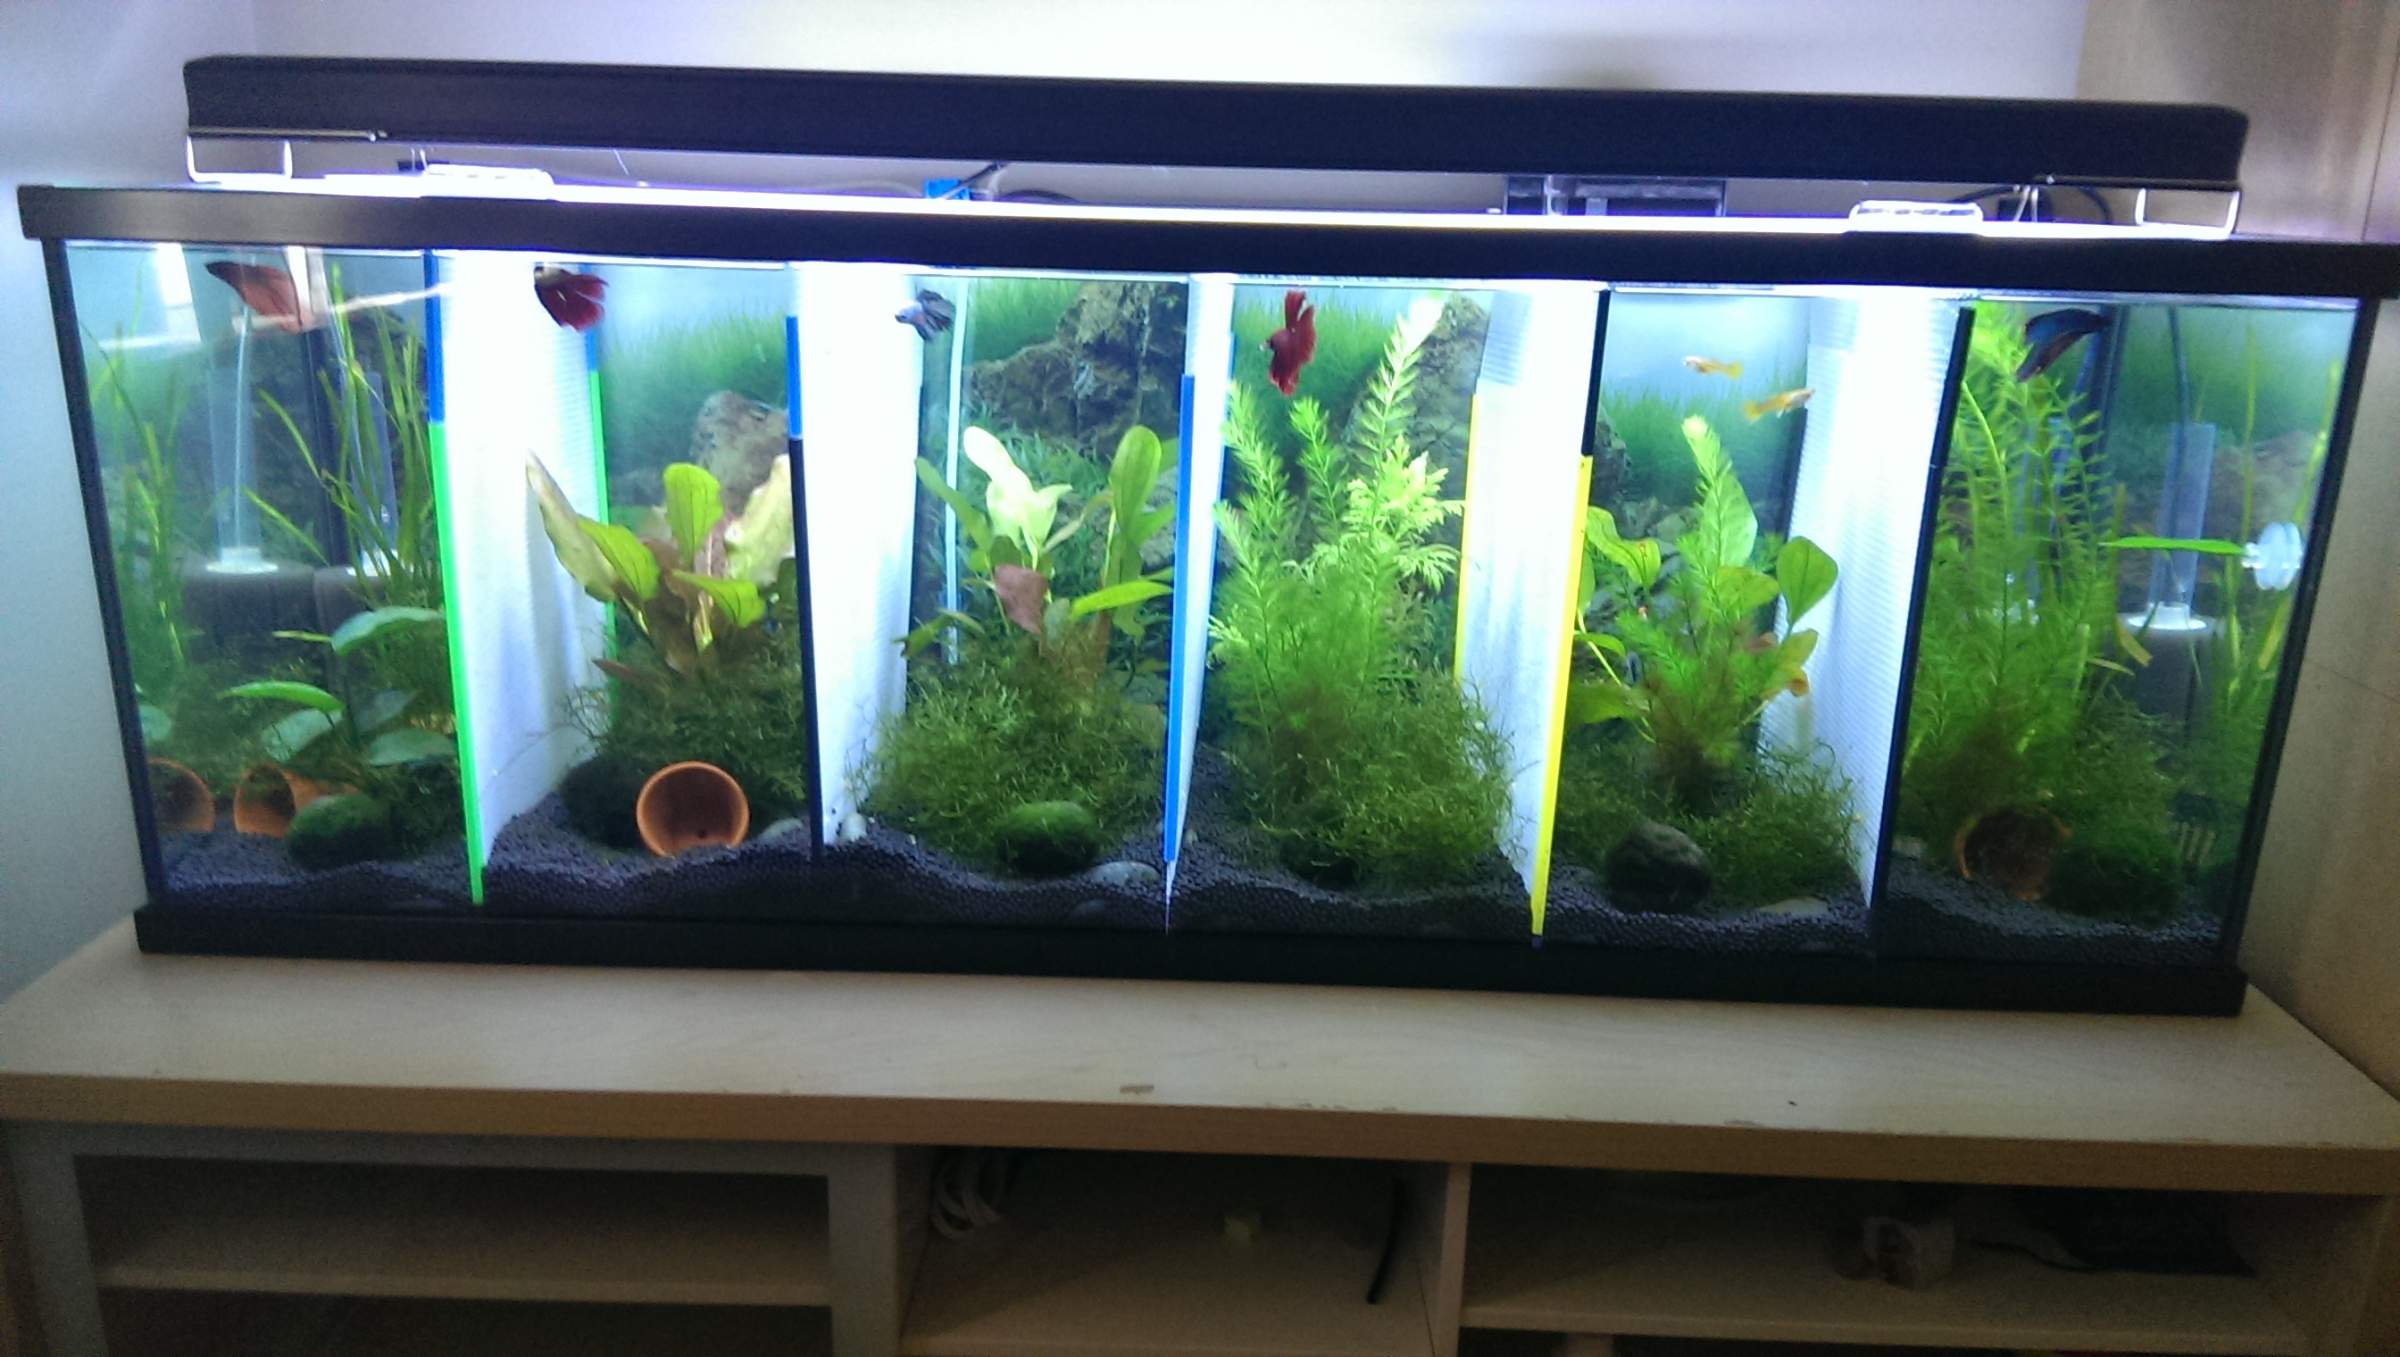 Quotes about fish tanks quotesgram for Betta fish tanks for sale